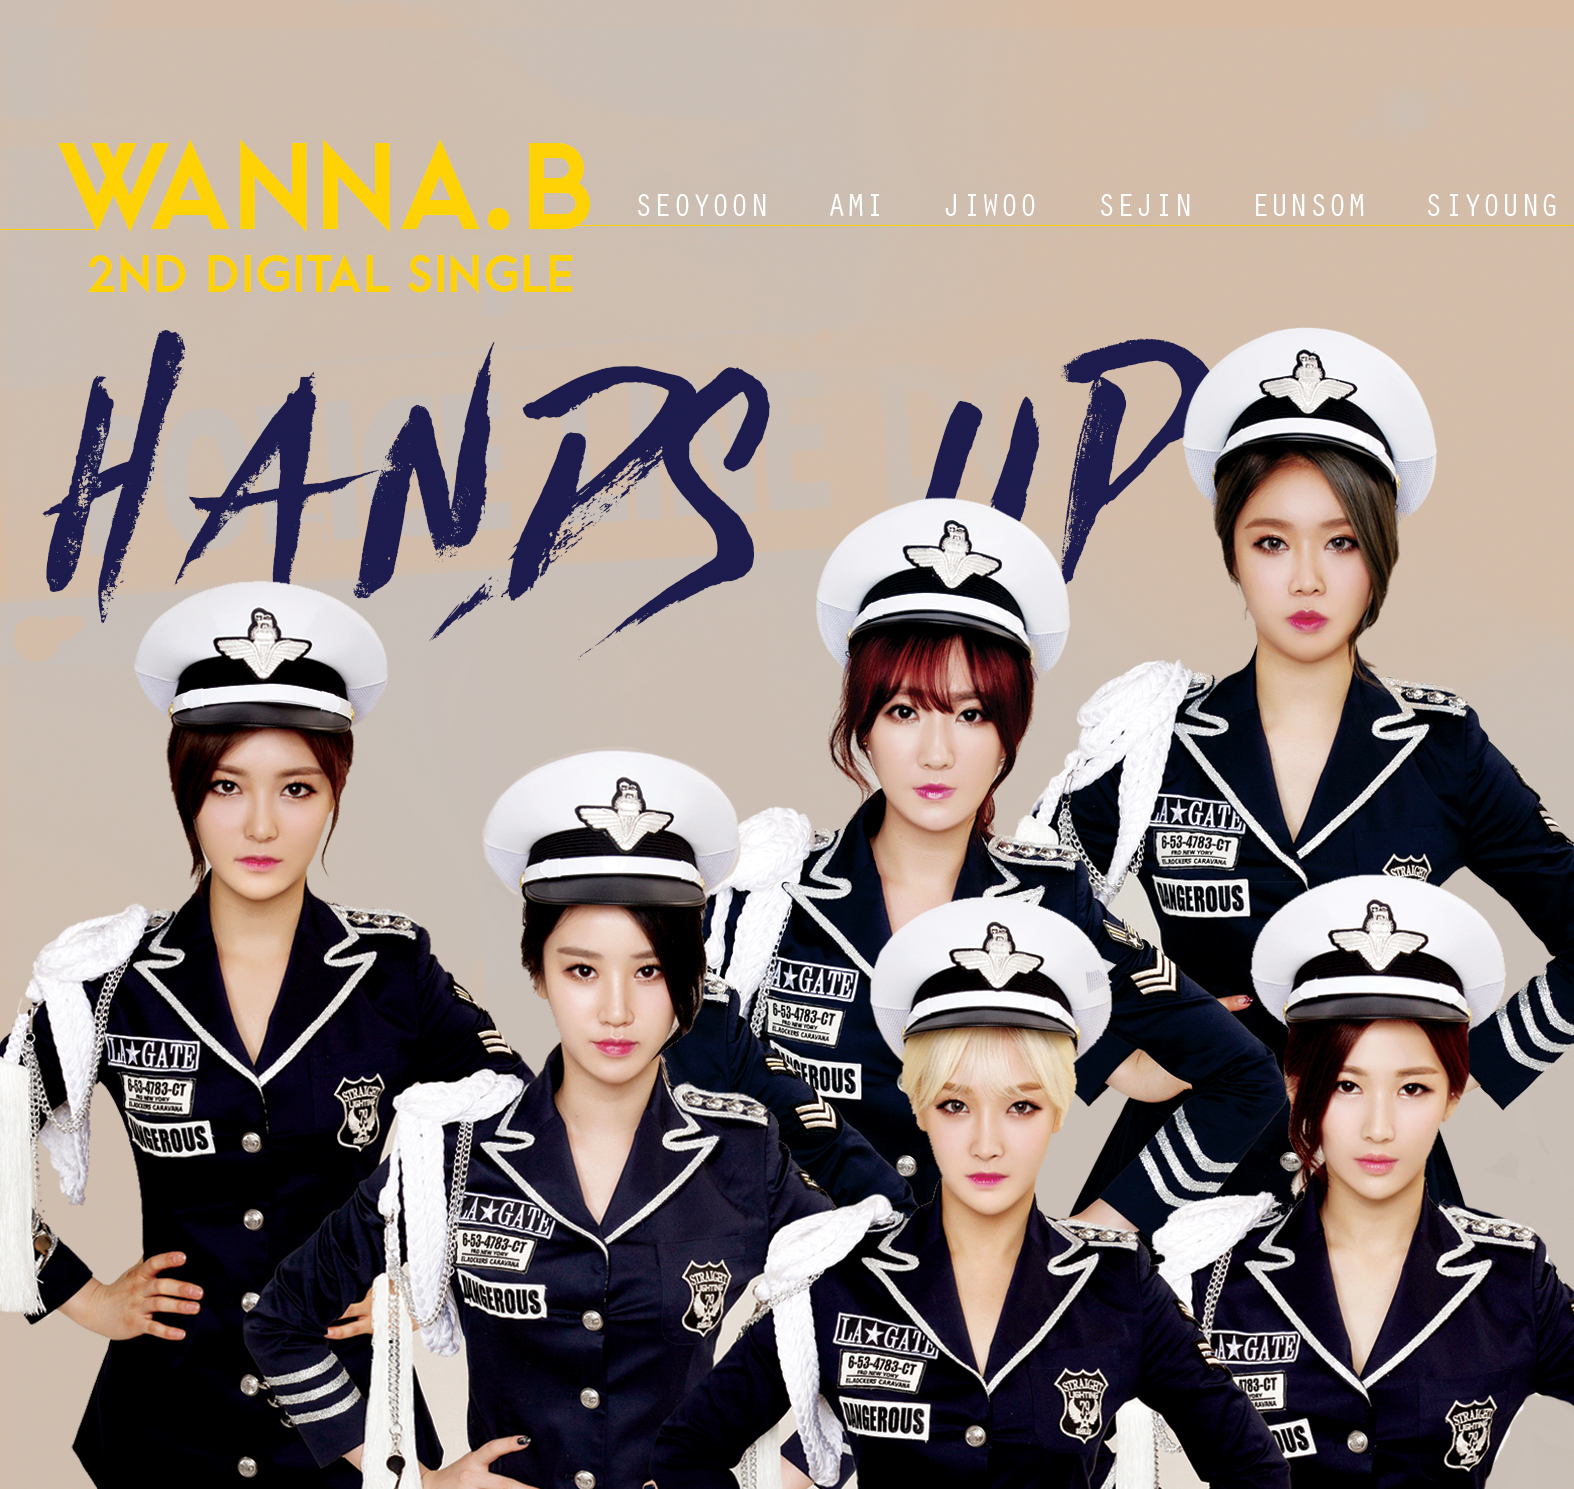 20180722.0057.50 Wanna.B - Hands Up cover.jpg